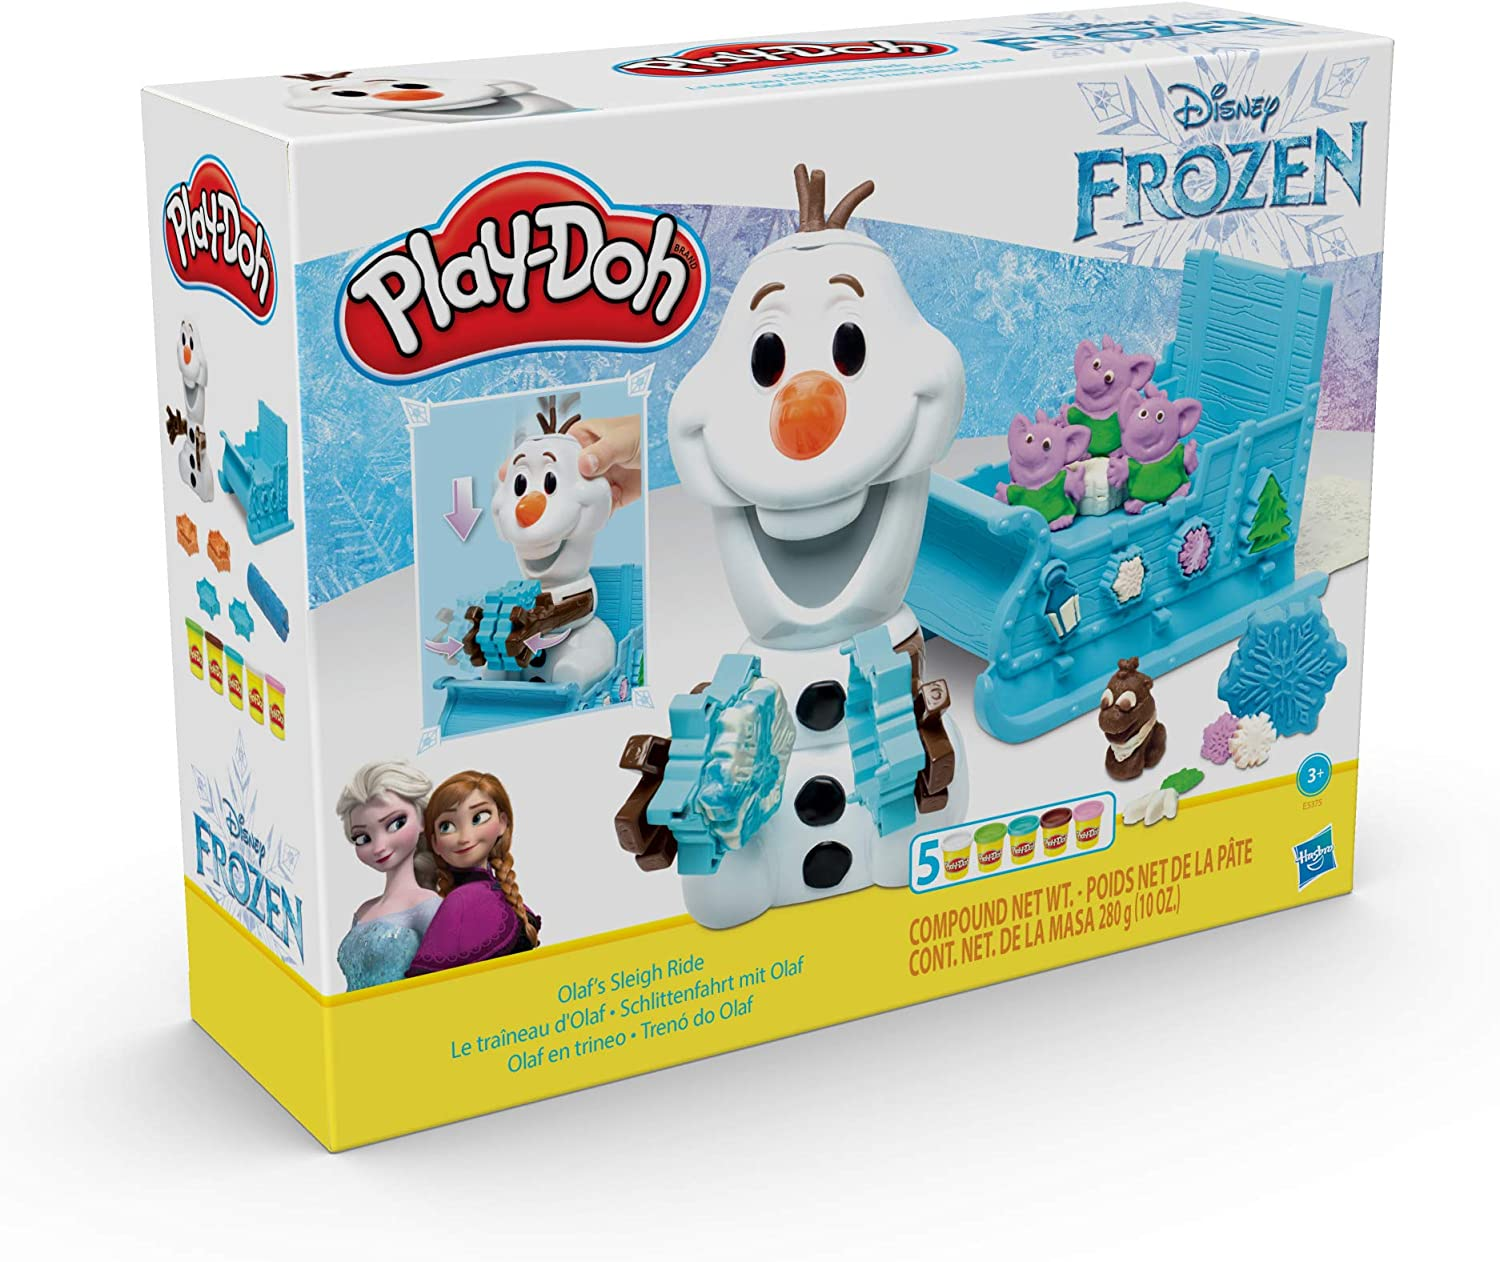 Play Doh Sparkle Compound Play Doh Frozen 2 Olafs Sleigh Ride Playset